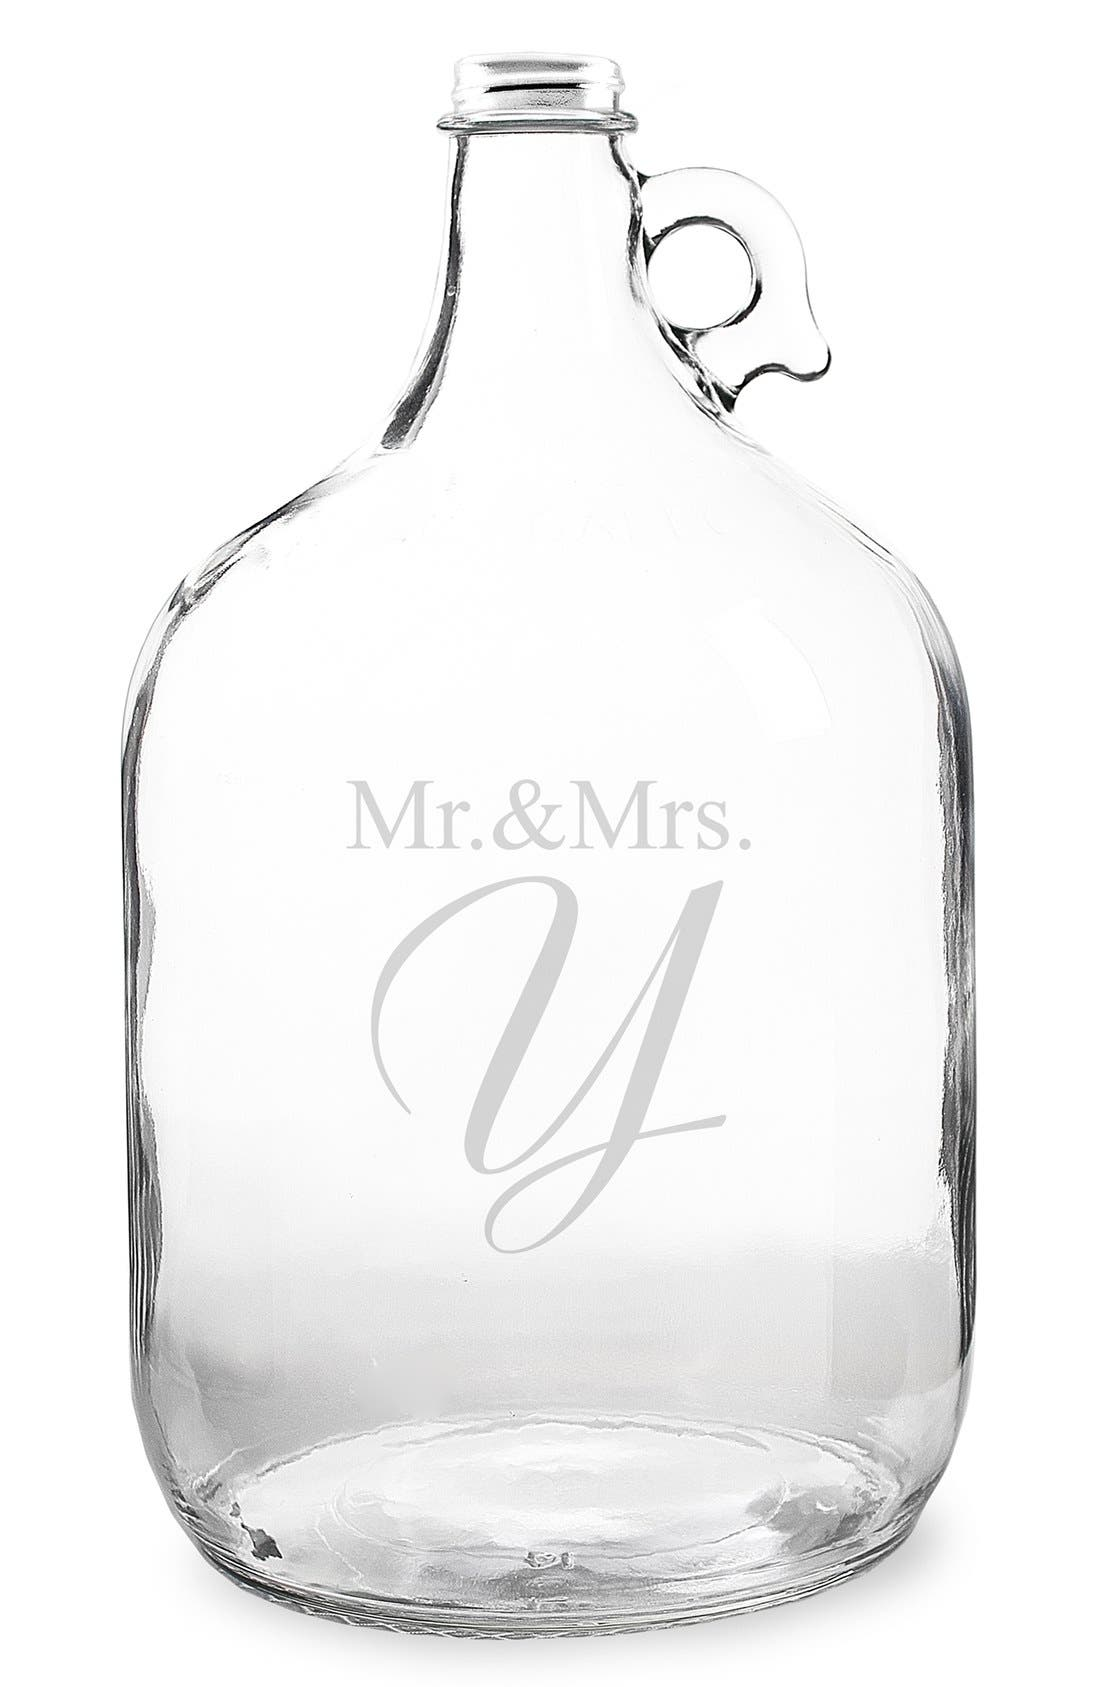 CATHY'S CONCEPTS 'Mr. & Mrs. - Wedding Wishes